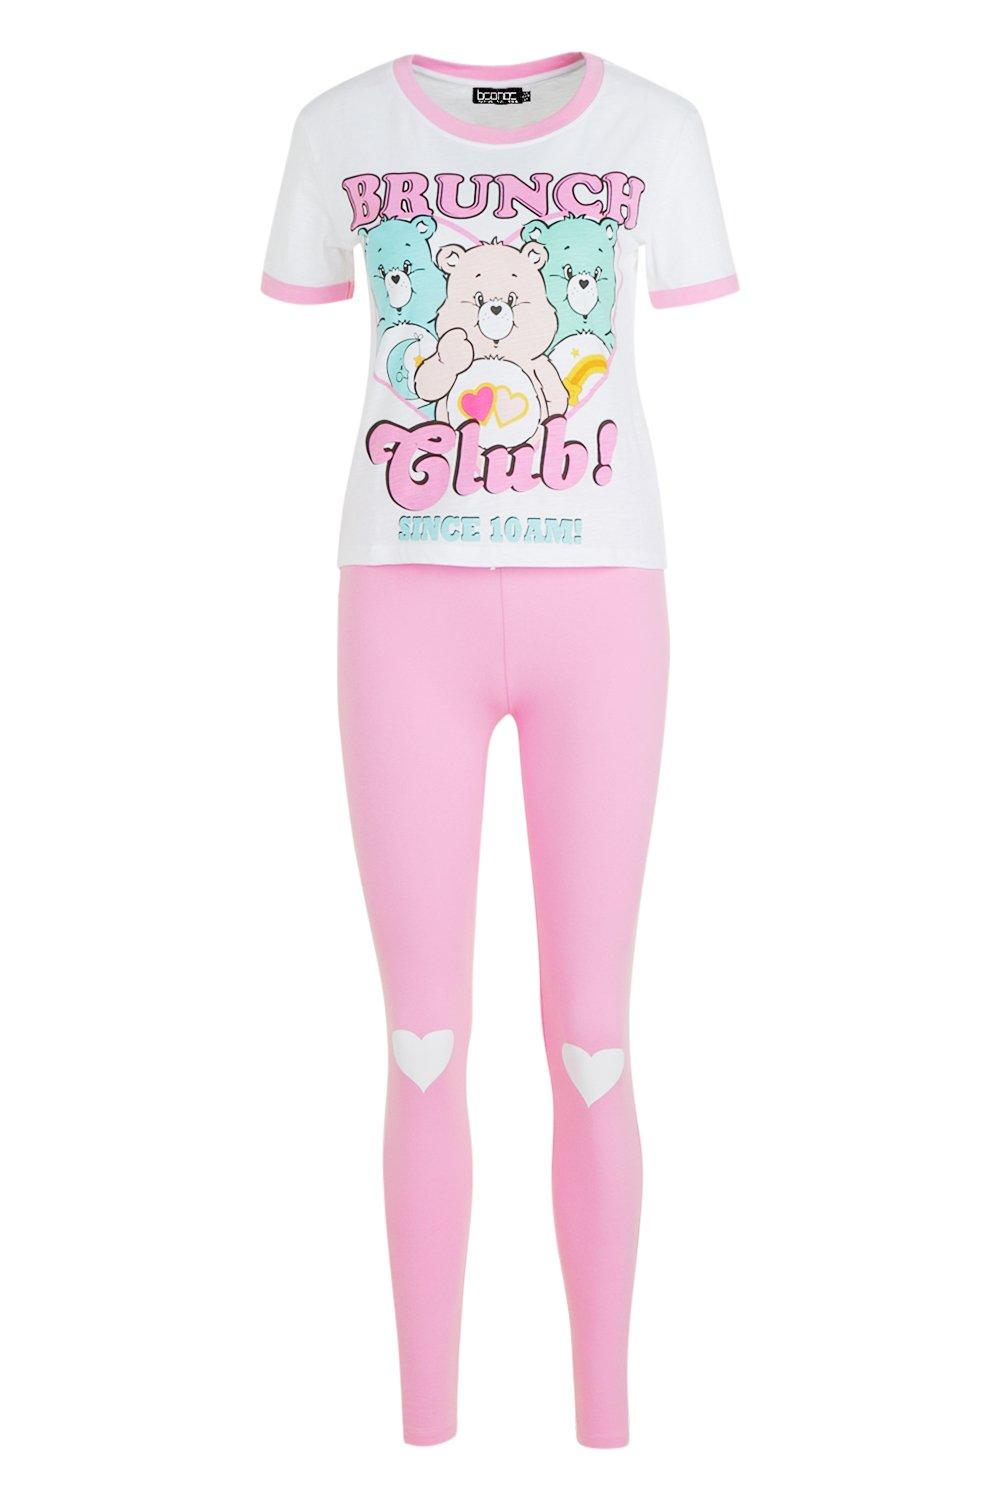 pijama Bears los Club Brunch de de rosa Care Conjunto vqF54ZOx